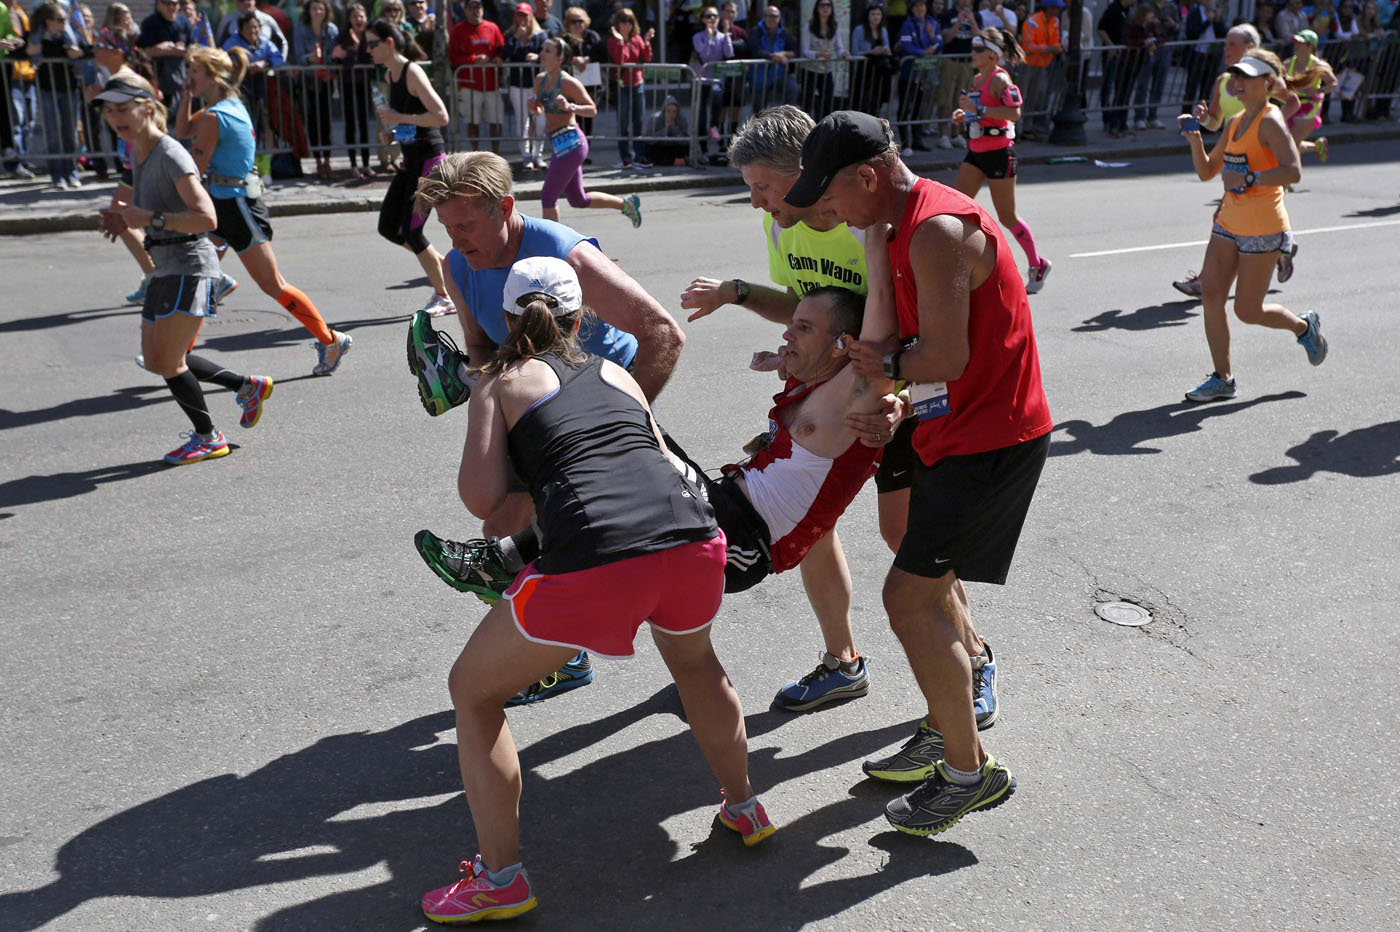 Four Runners Carry Adam Hurst Down Boylston Street After His Legs Locked Up During The 118th Running Of Boston Marathon In Massachusetts This